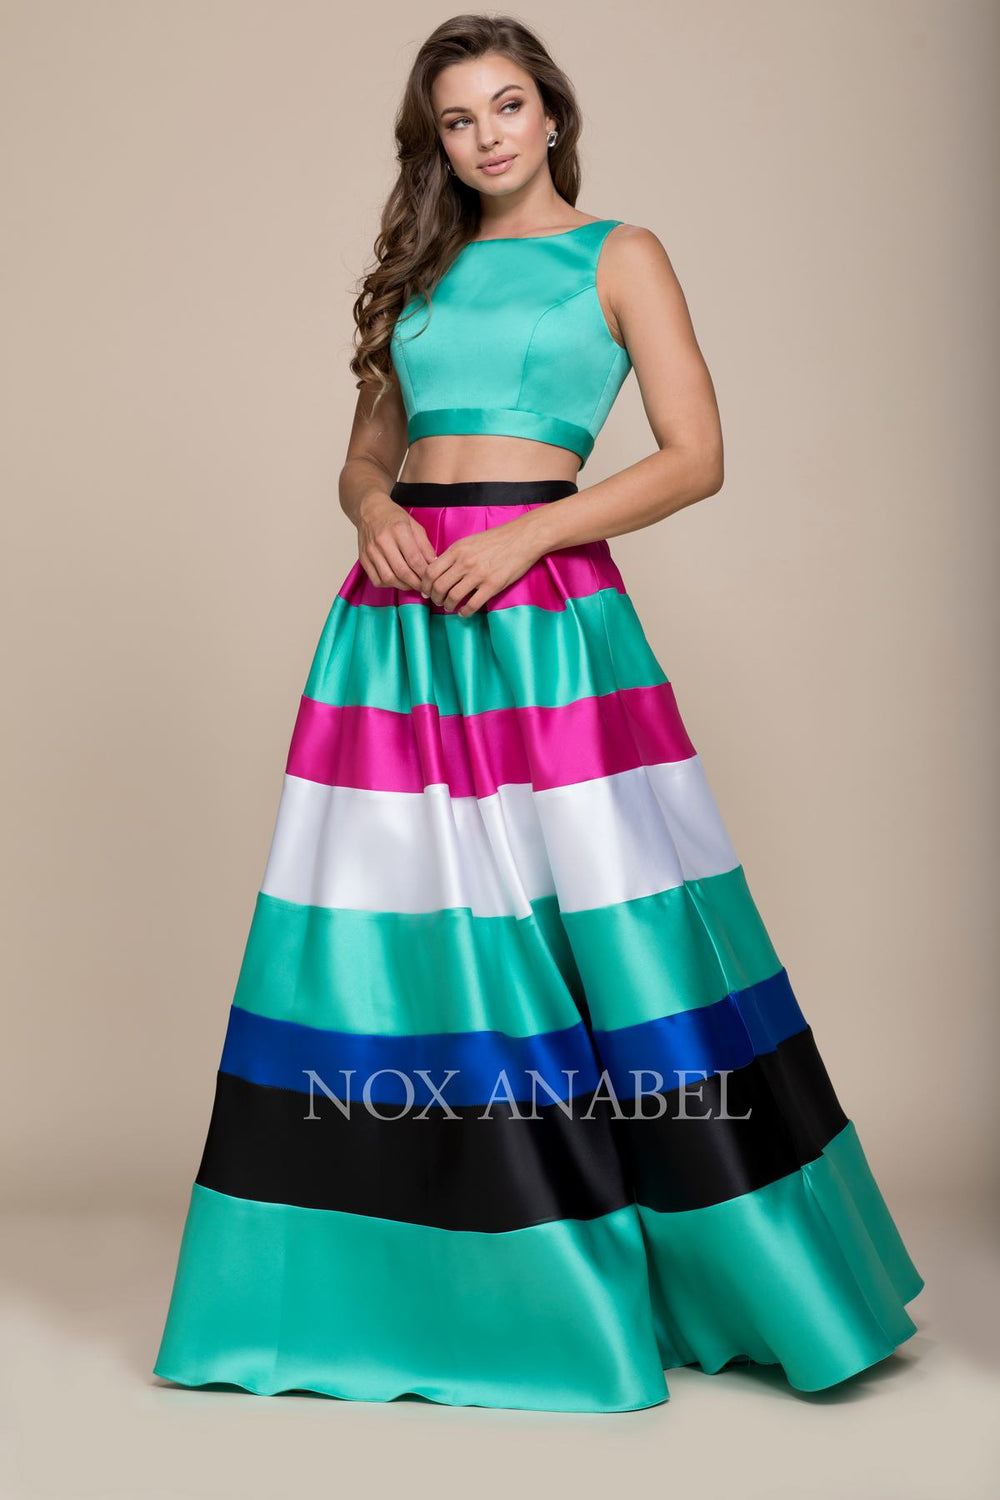 TWO-PIECE DRESS WITH MULTI-COLOR STRIPED SKIRT 8335 BY NARIANNA